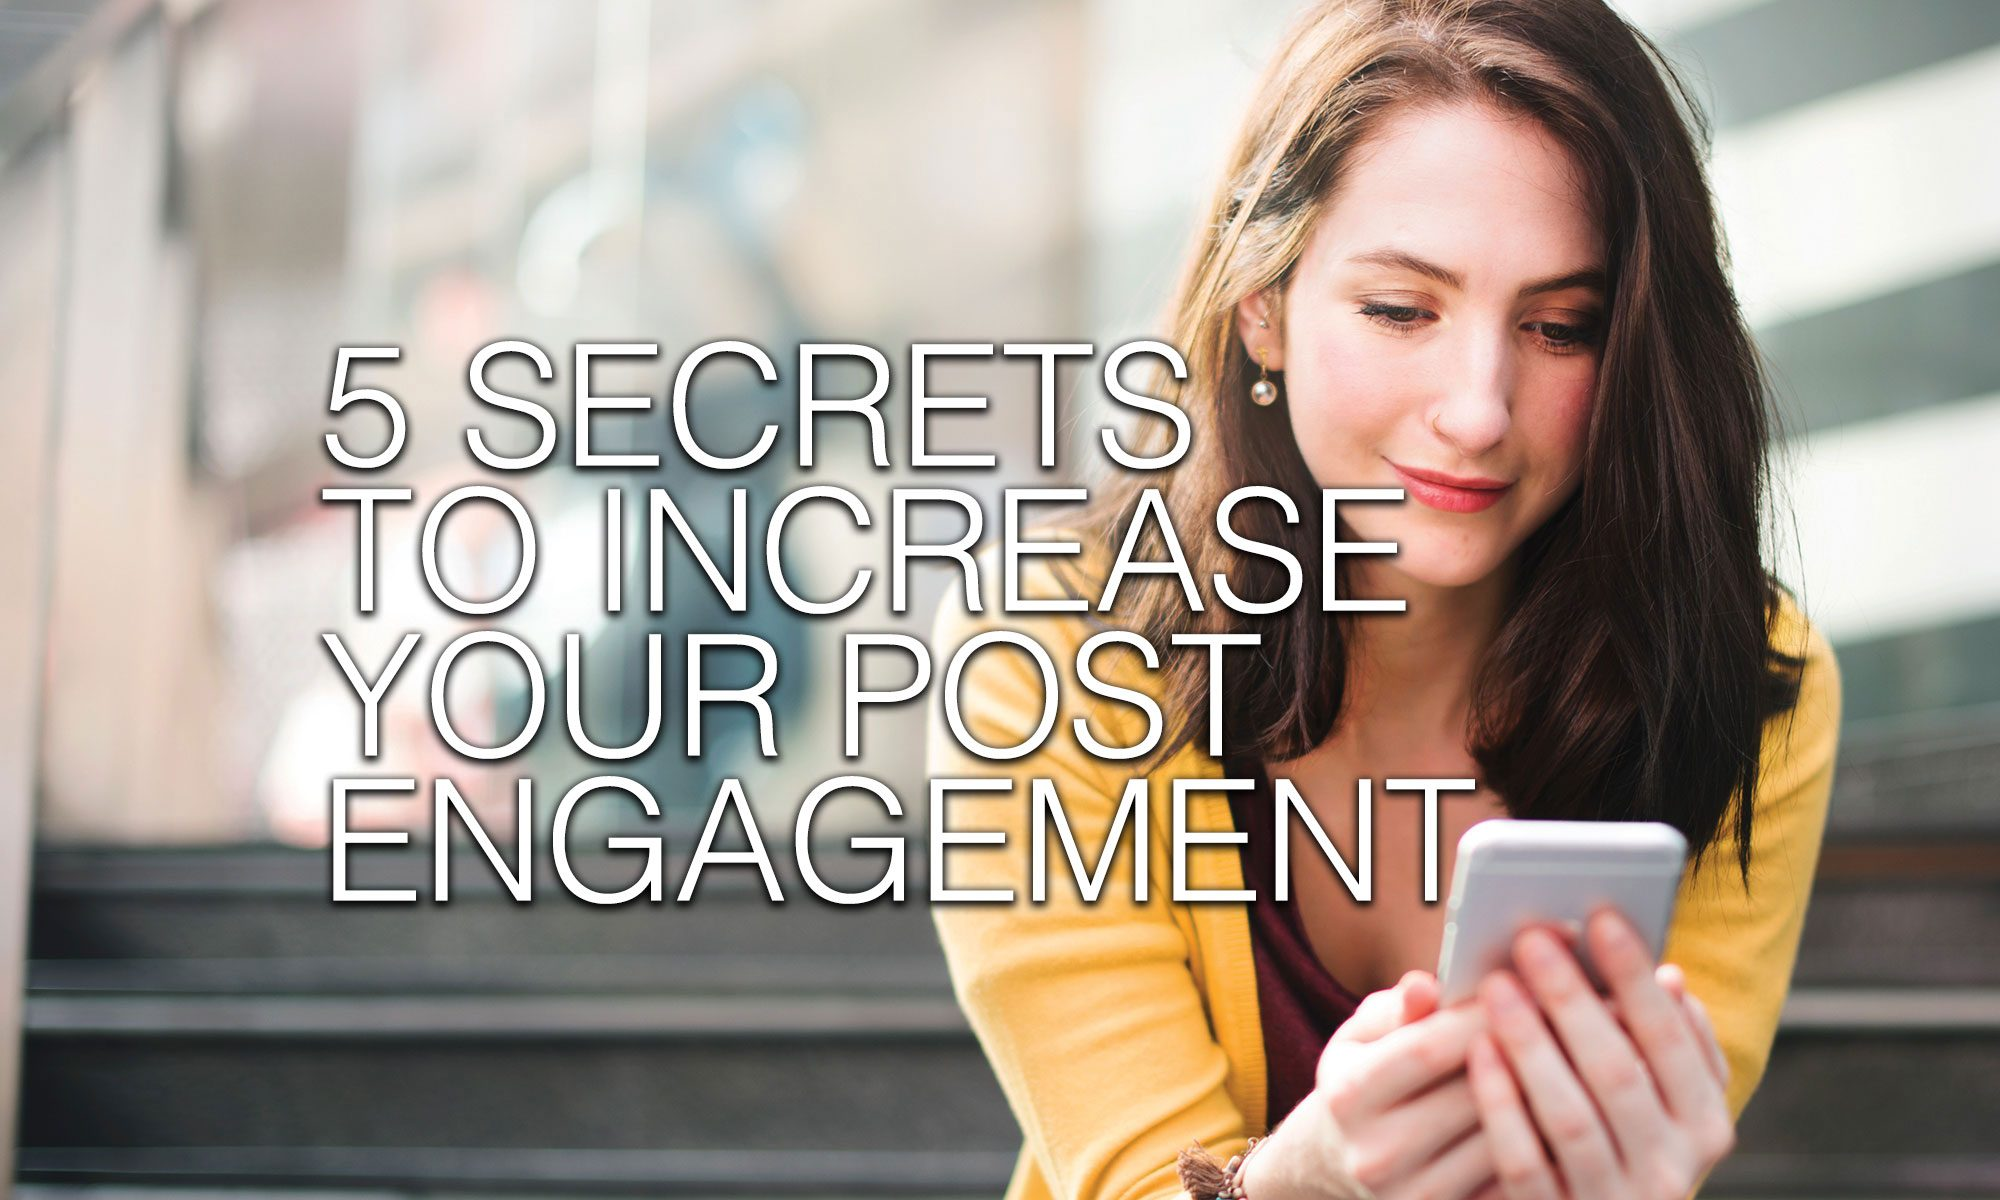 Social Media and Emotional Intelligence: 5 Secrets to Increase Your Post Engagement